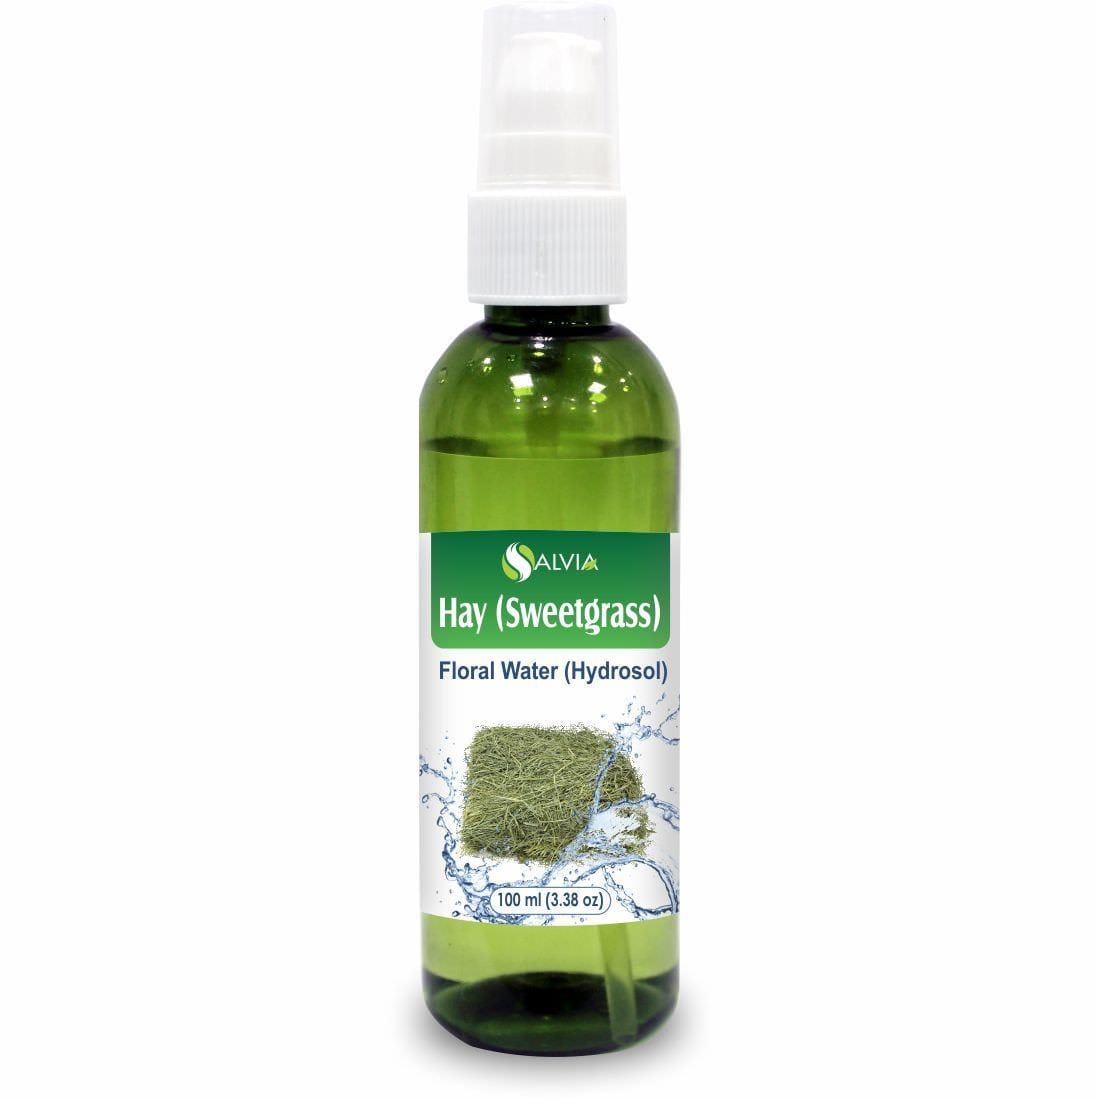 Salvia Floral Water 100 ML Hay (Sweetgrass) Floral Water (Hydrosol) 100% Pure and Natural